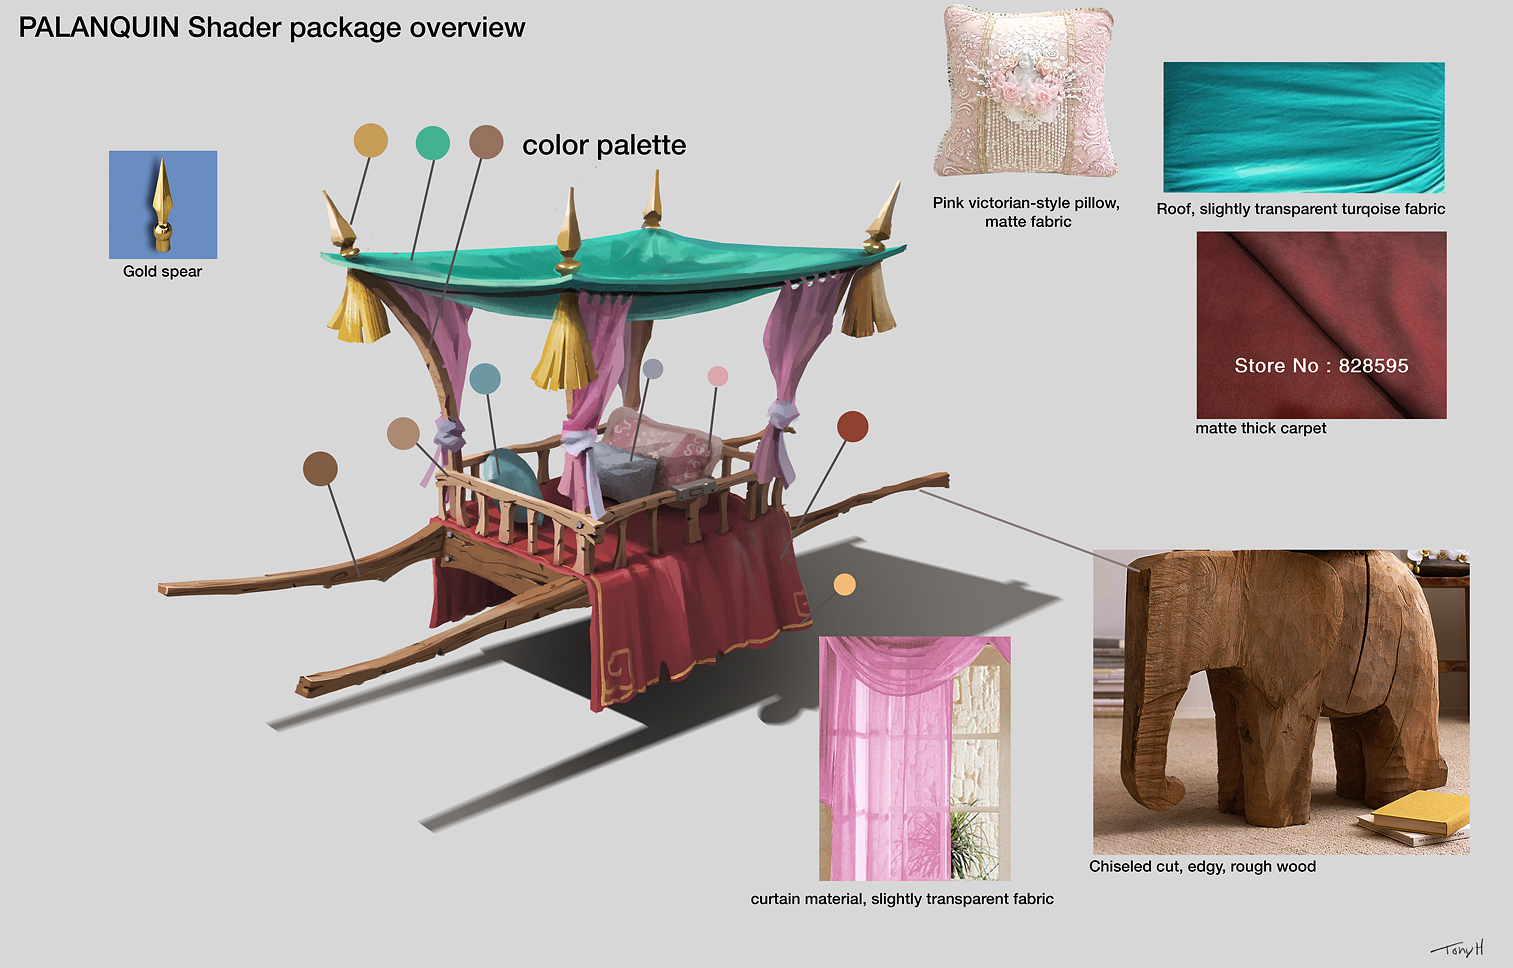 And a final concept of the palanquin that I painted, together with a shader package.